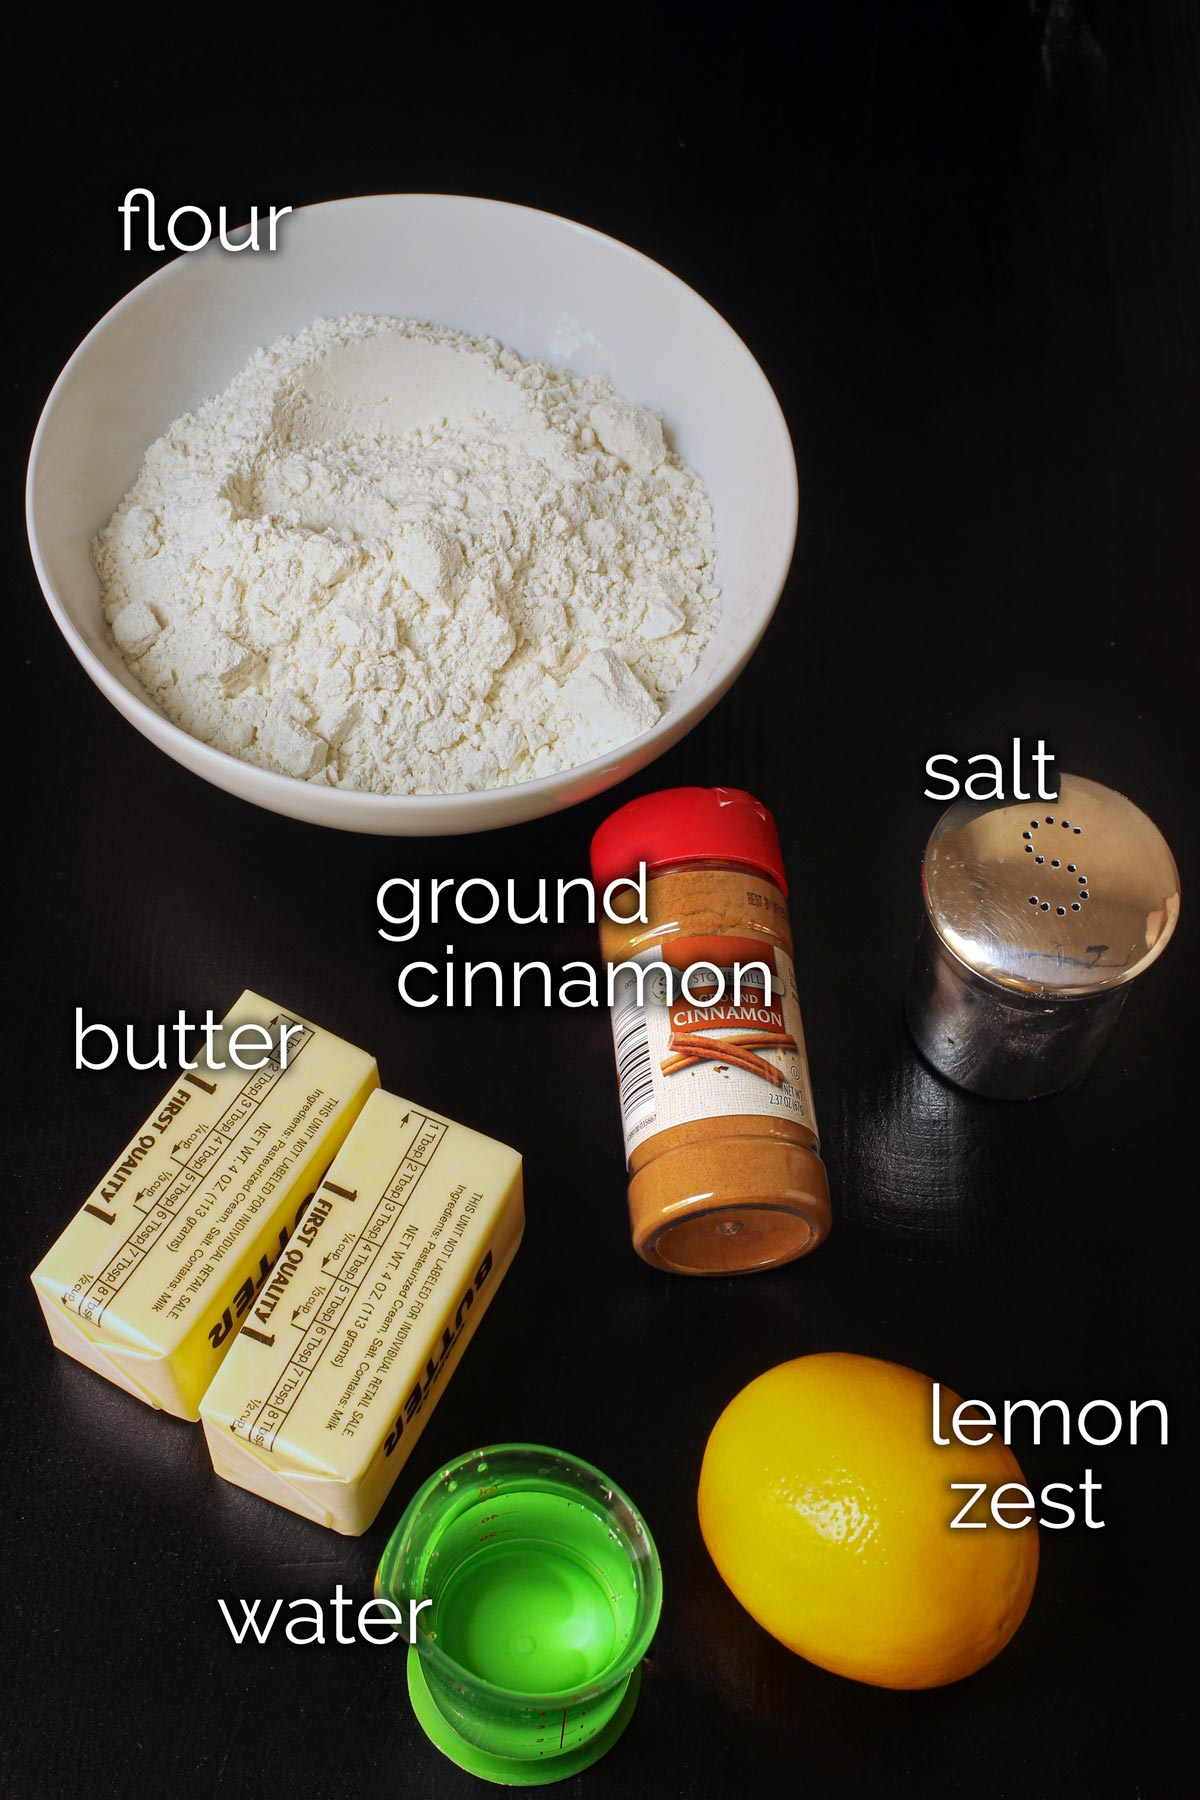 pastry ingredients laid out on black table top.